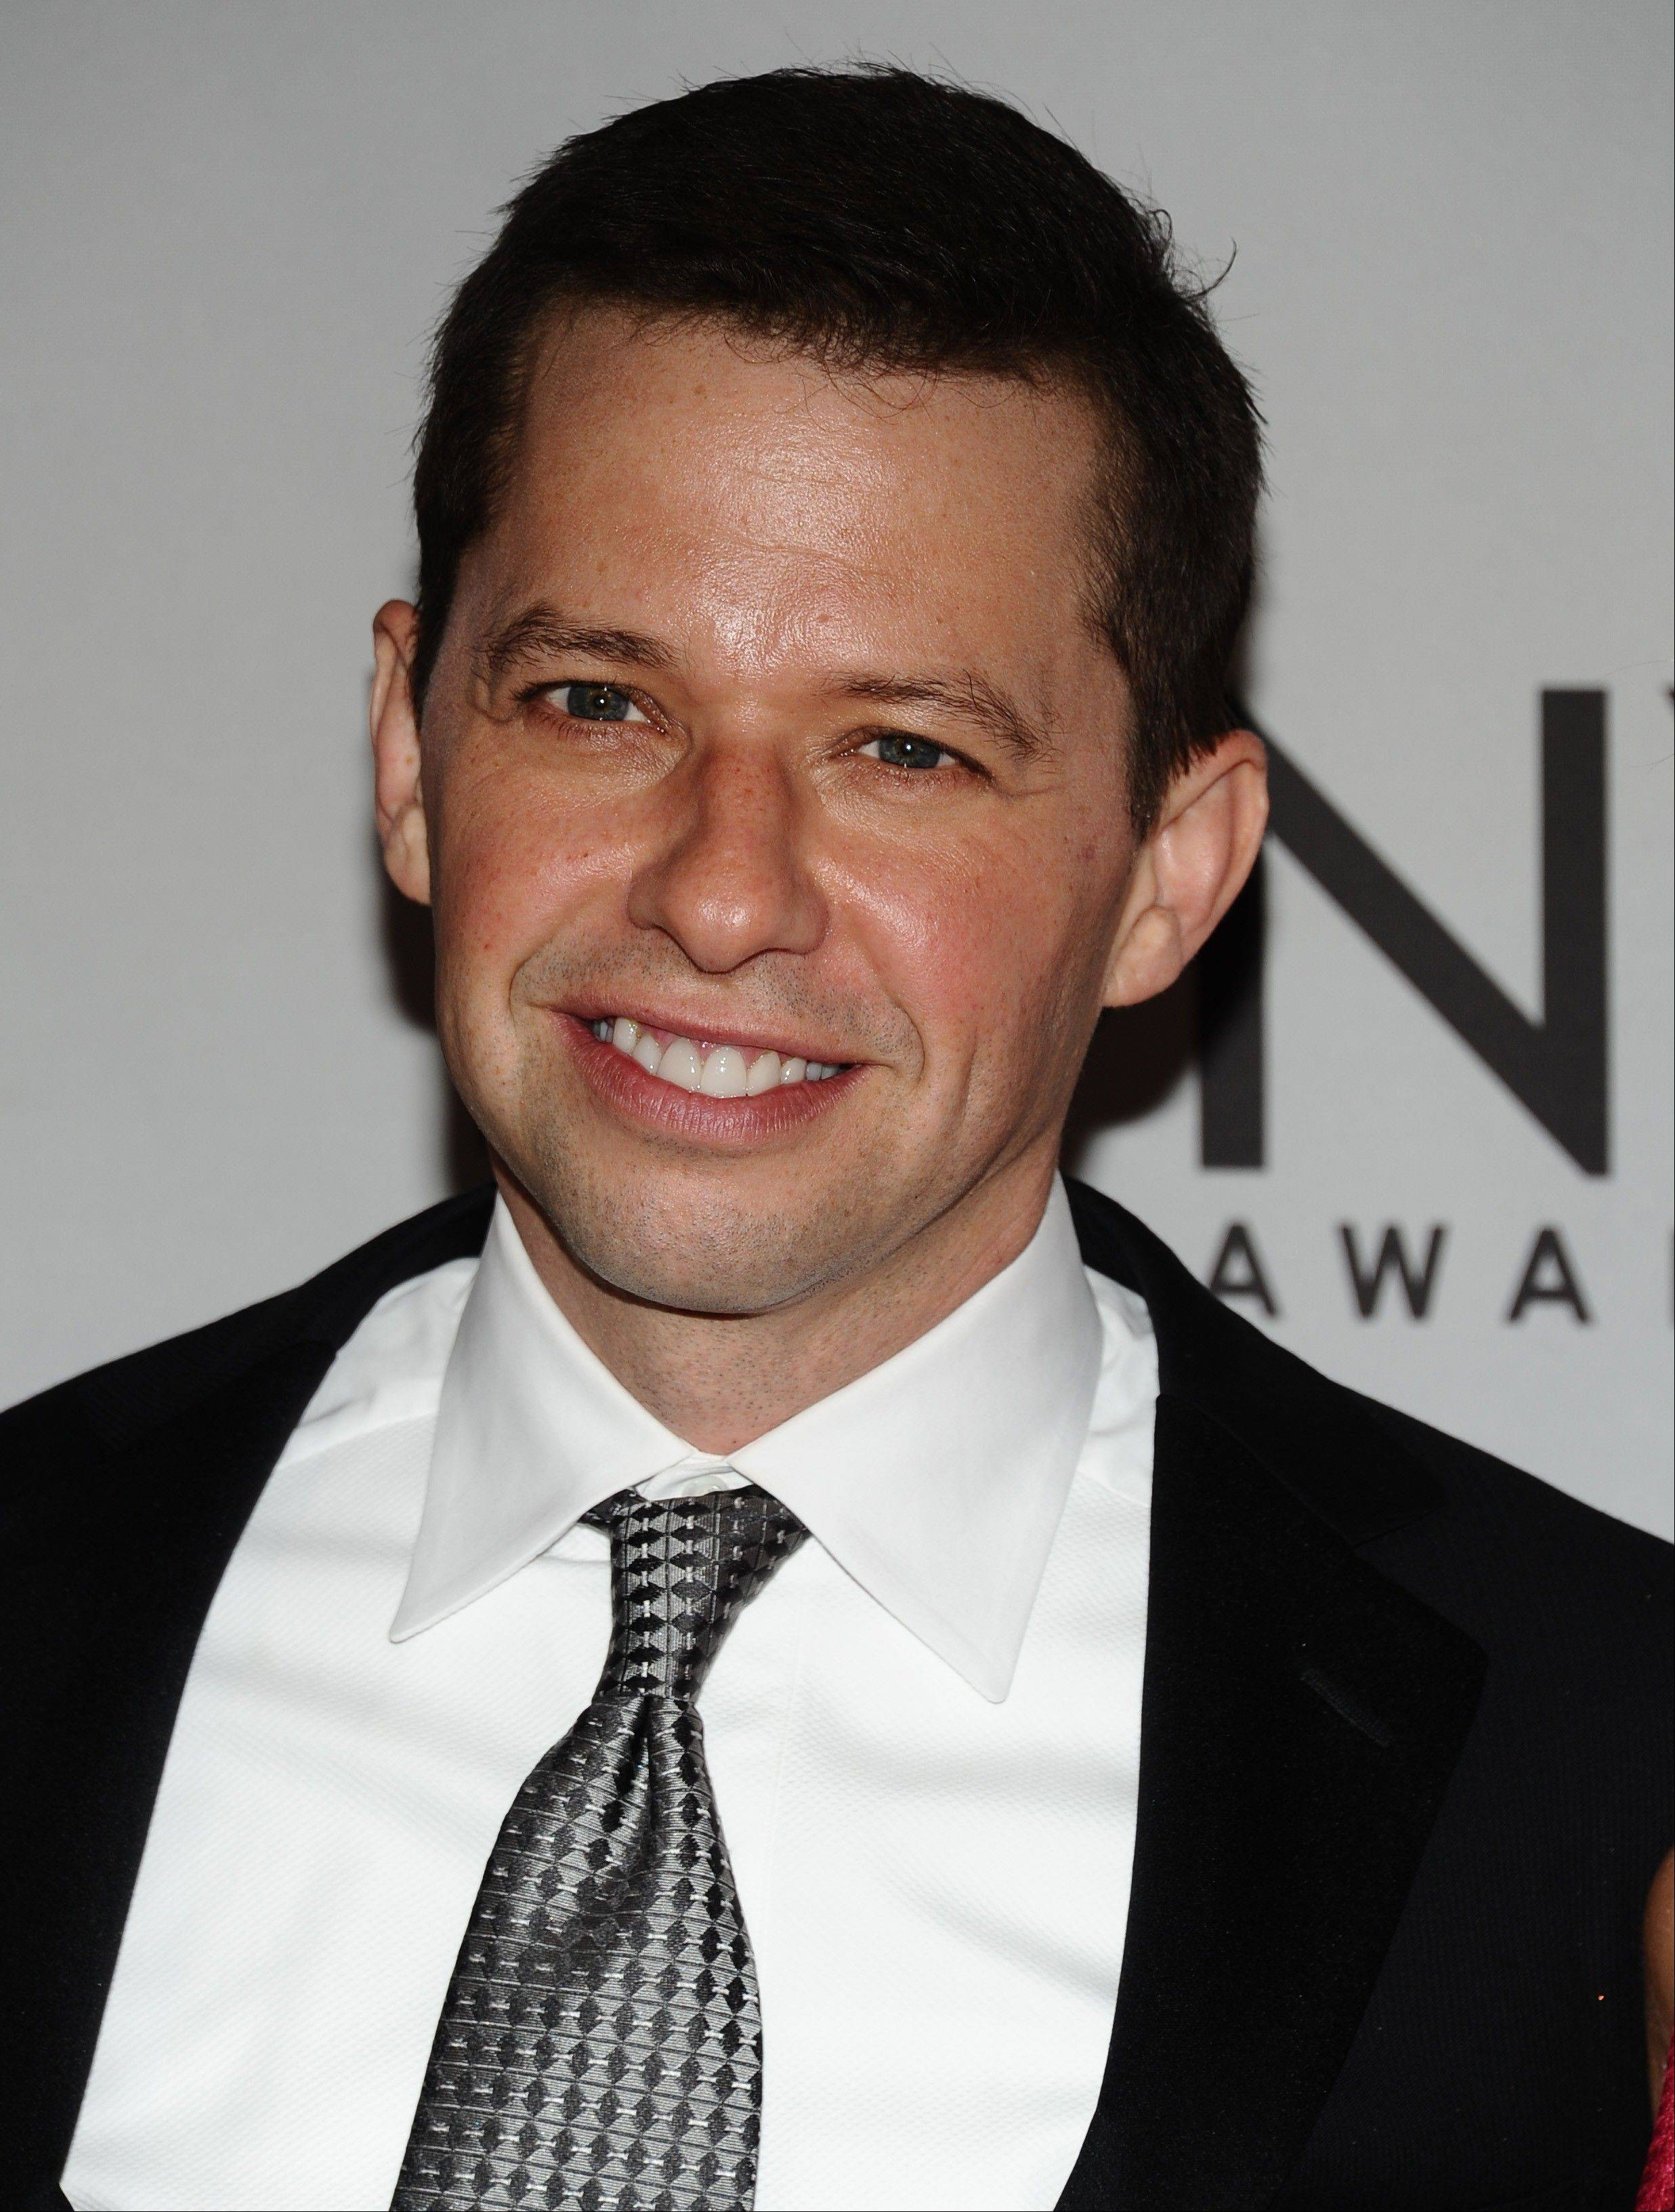 Jon Cryer injured himself Sunday during the cycling part of a triathlon in L.A. after losing control of his bicycle. He suffered scrapes and bruises but no broken bones.